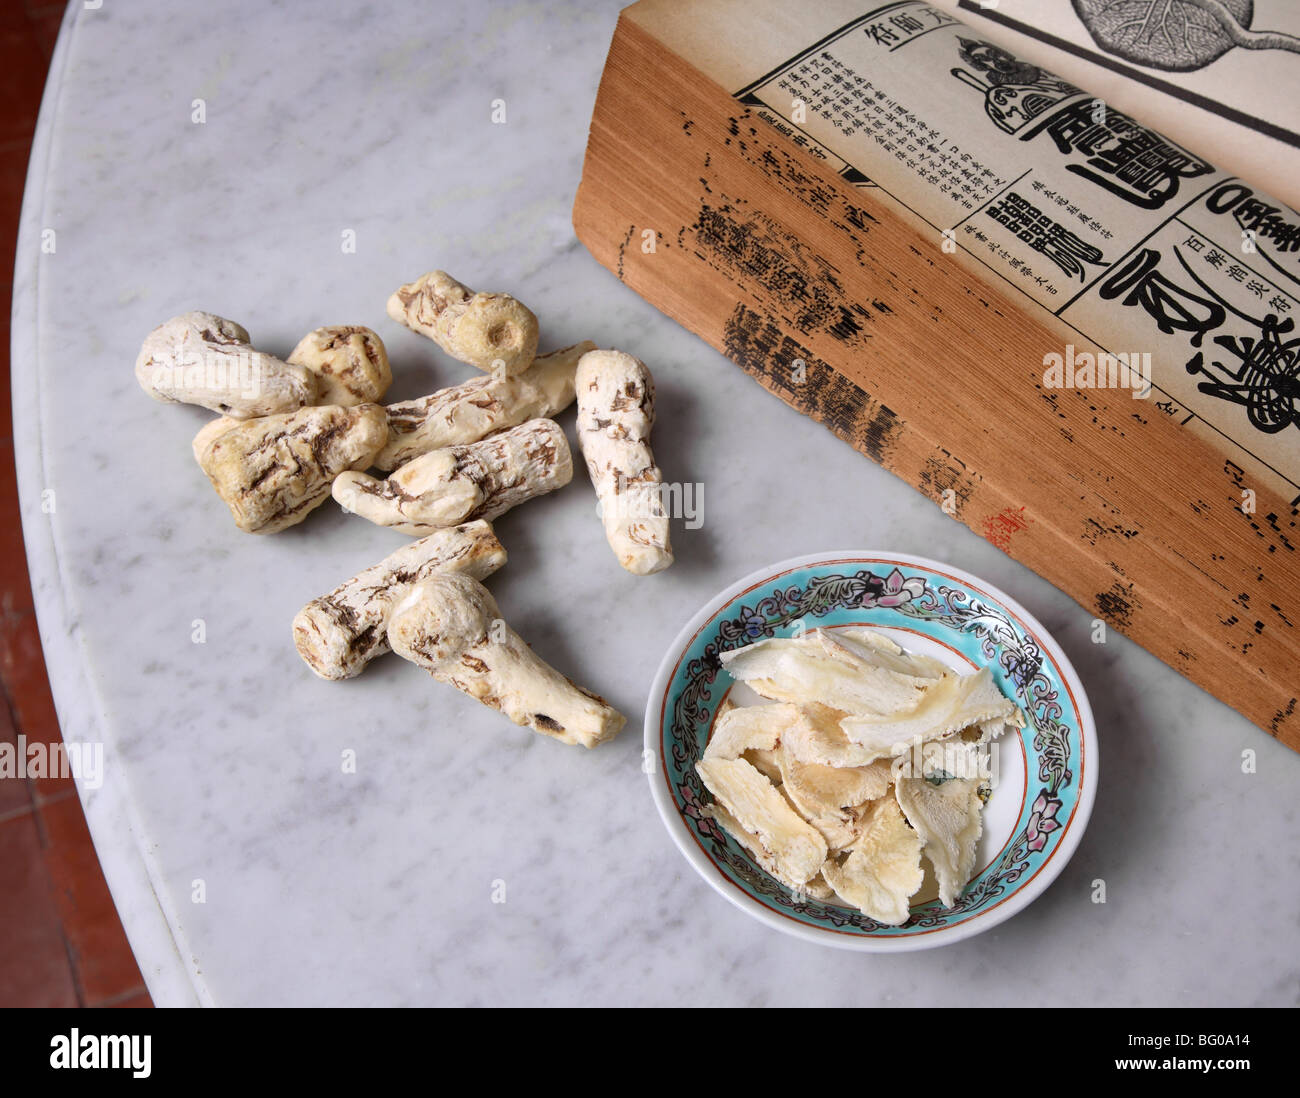 Dong Quai, traditional Chinese Medicine ingredient, female ginseng because of its balancing effect on the female - Stock Image